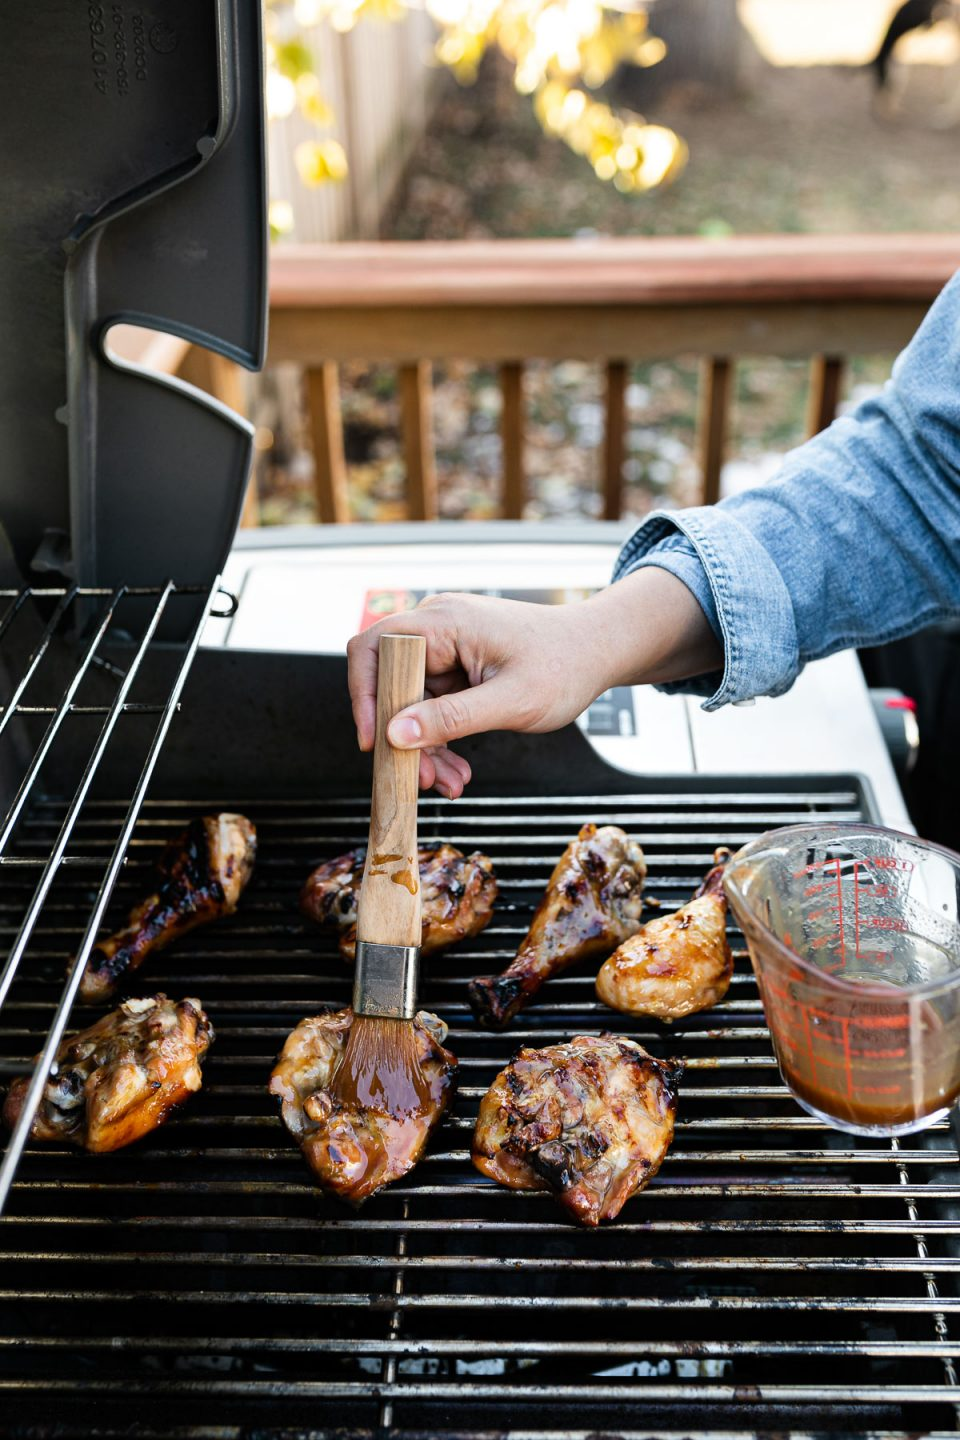 Woman's hands brushing apple cider glaze on grilled chicken.